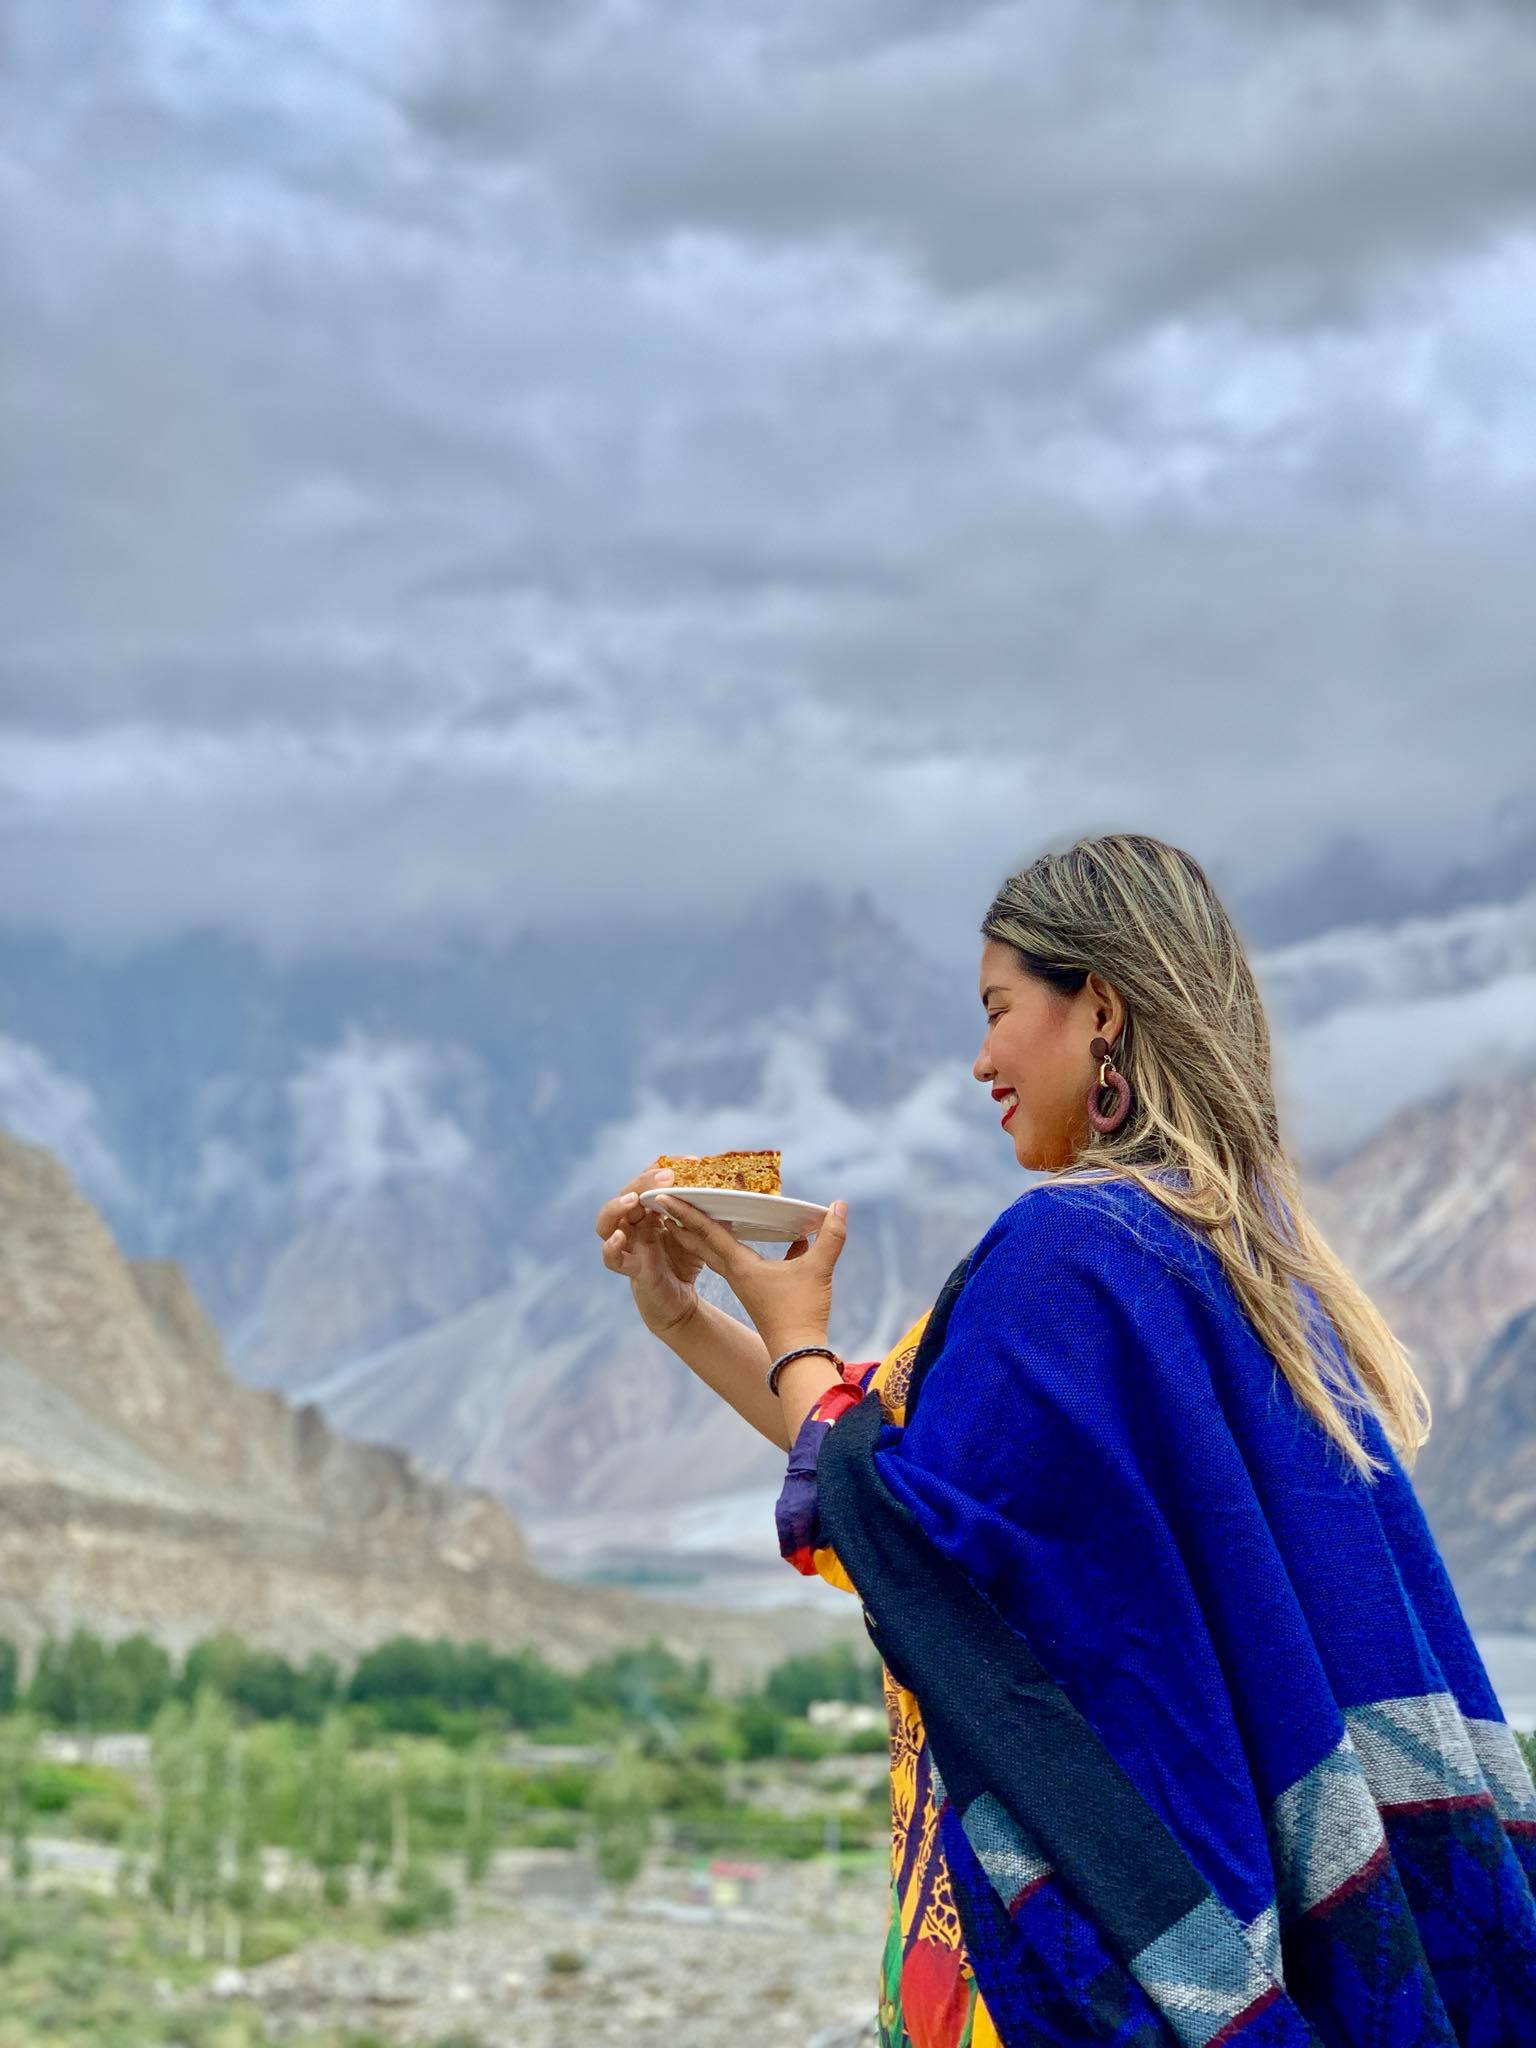 Kach Solo Travels in 2019 Driving in North Hunza Valley to Khunjerab Pass13.jpg